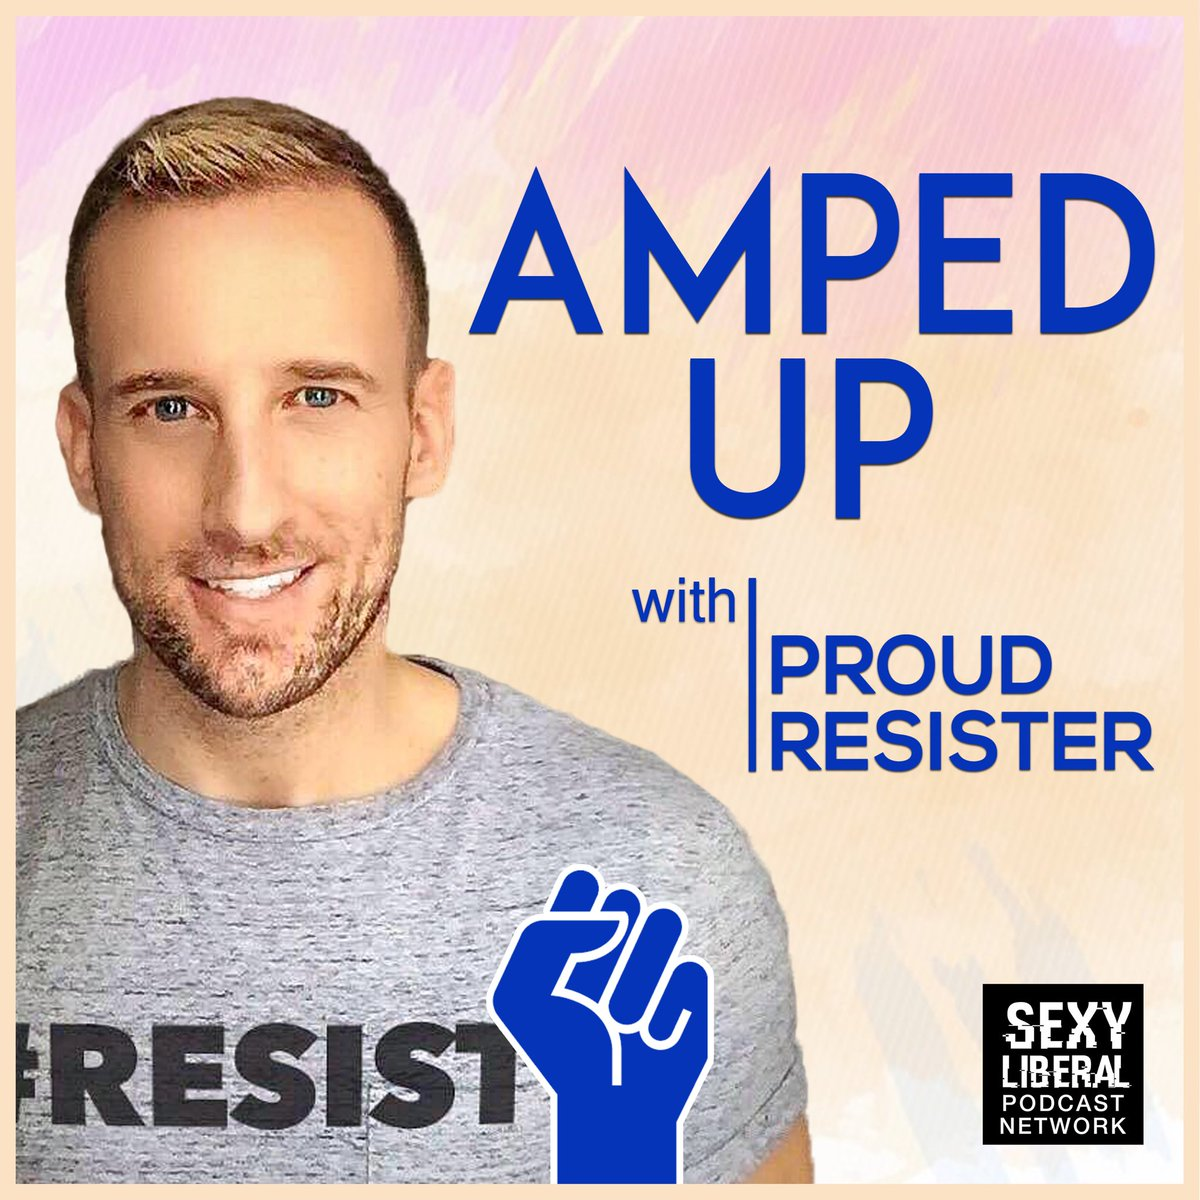 On this week's #AmpedUp I chat with MSNBC Legal Analyst and Former Federal Prosecutor @glennkirschner2 about the question on everyone's mind: Will Donald Trump ever face justice? Listen on @ApplePodcasts, @Spotify or wherever you subscribe to podcasts. 🎧 podcasts.apple.com/us/podcast/amp…